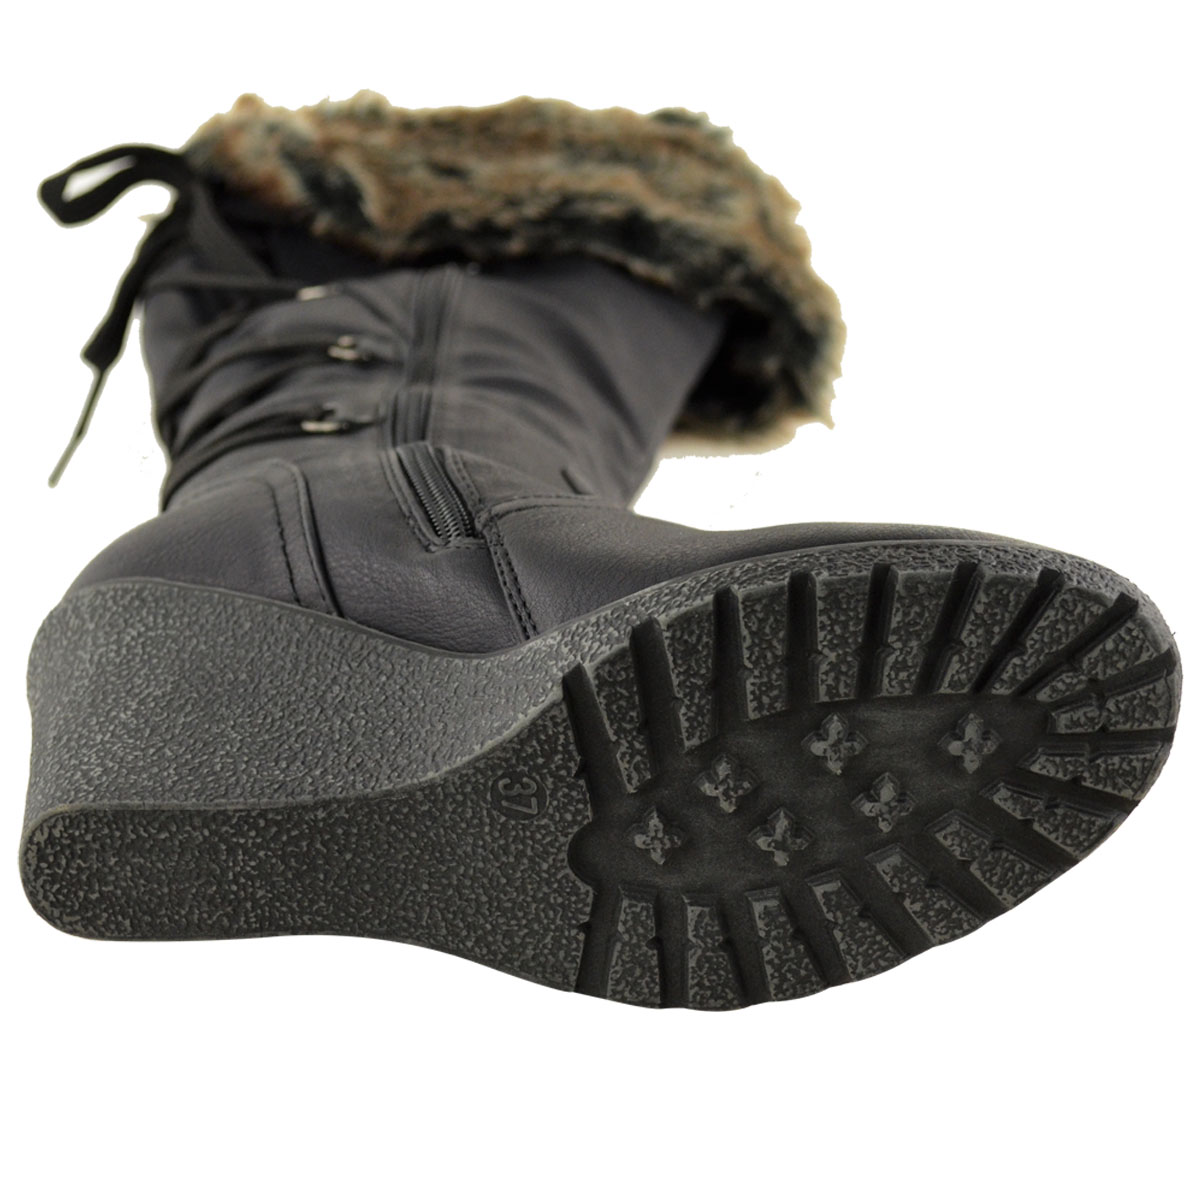 WOMENS-LADIES-MID-WEDGE-HIGH-HEEL-FUR-LINED-WARM-WINTER-KNEE-CALF-ZIP-BOOTS-SIZE thumbnail 8